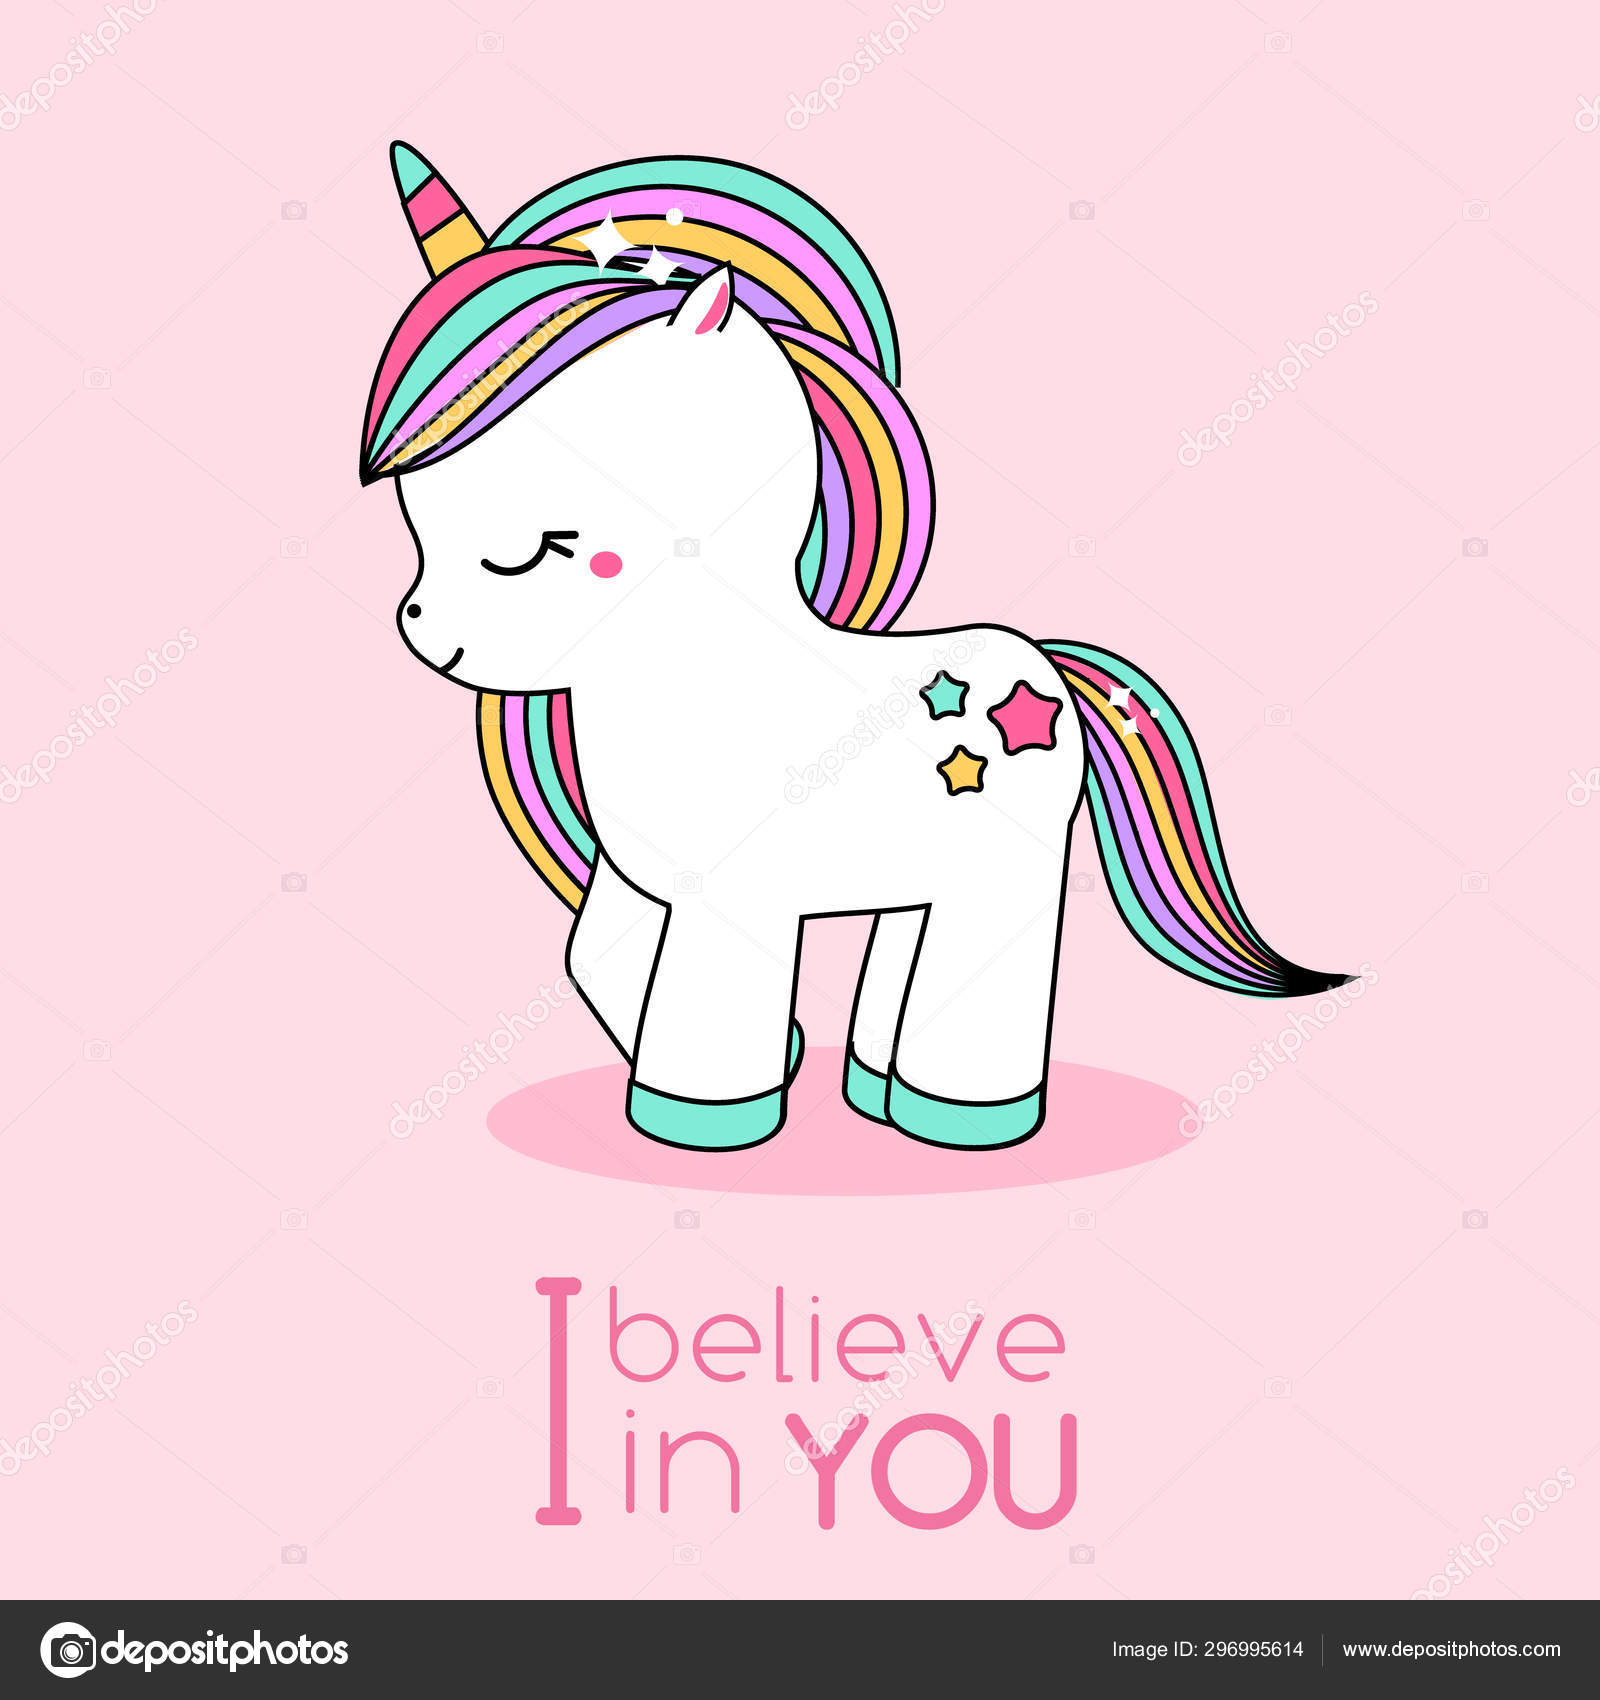 Cartoon Kawaii Unicorn Cute Fairy Horse Character With Typography I Believe In You Illustration For Romantic Cards And Prints Stock Vector C Bonnyheize Gmail Com 296995614